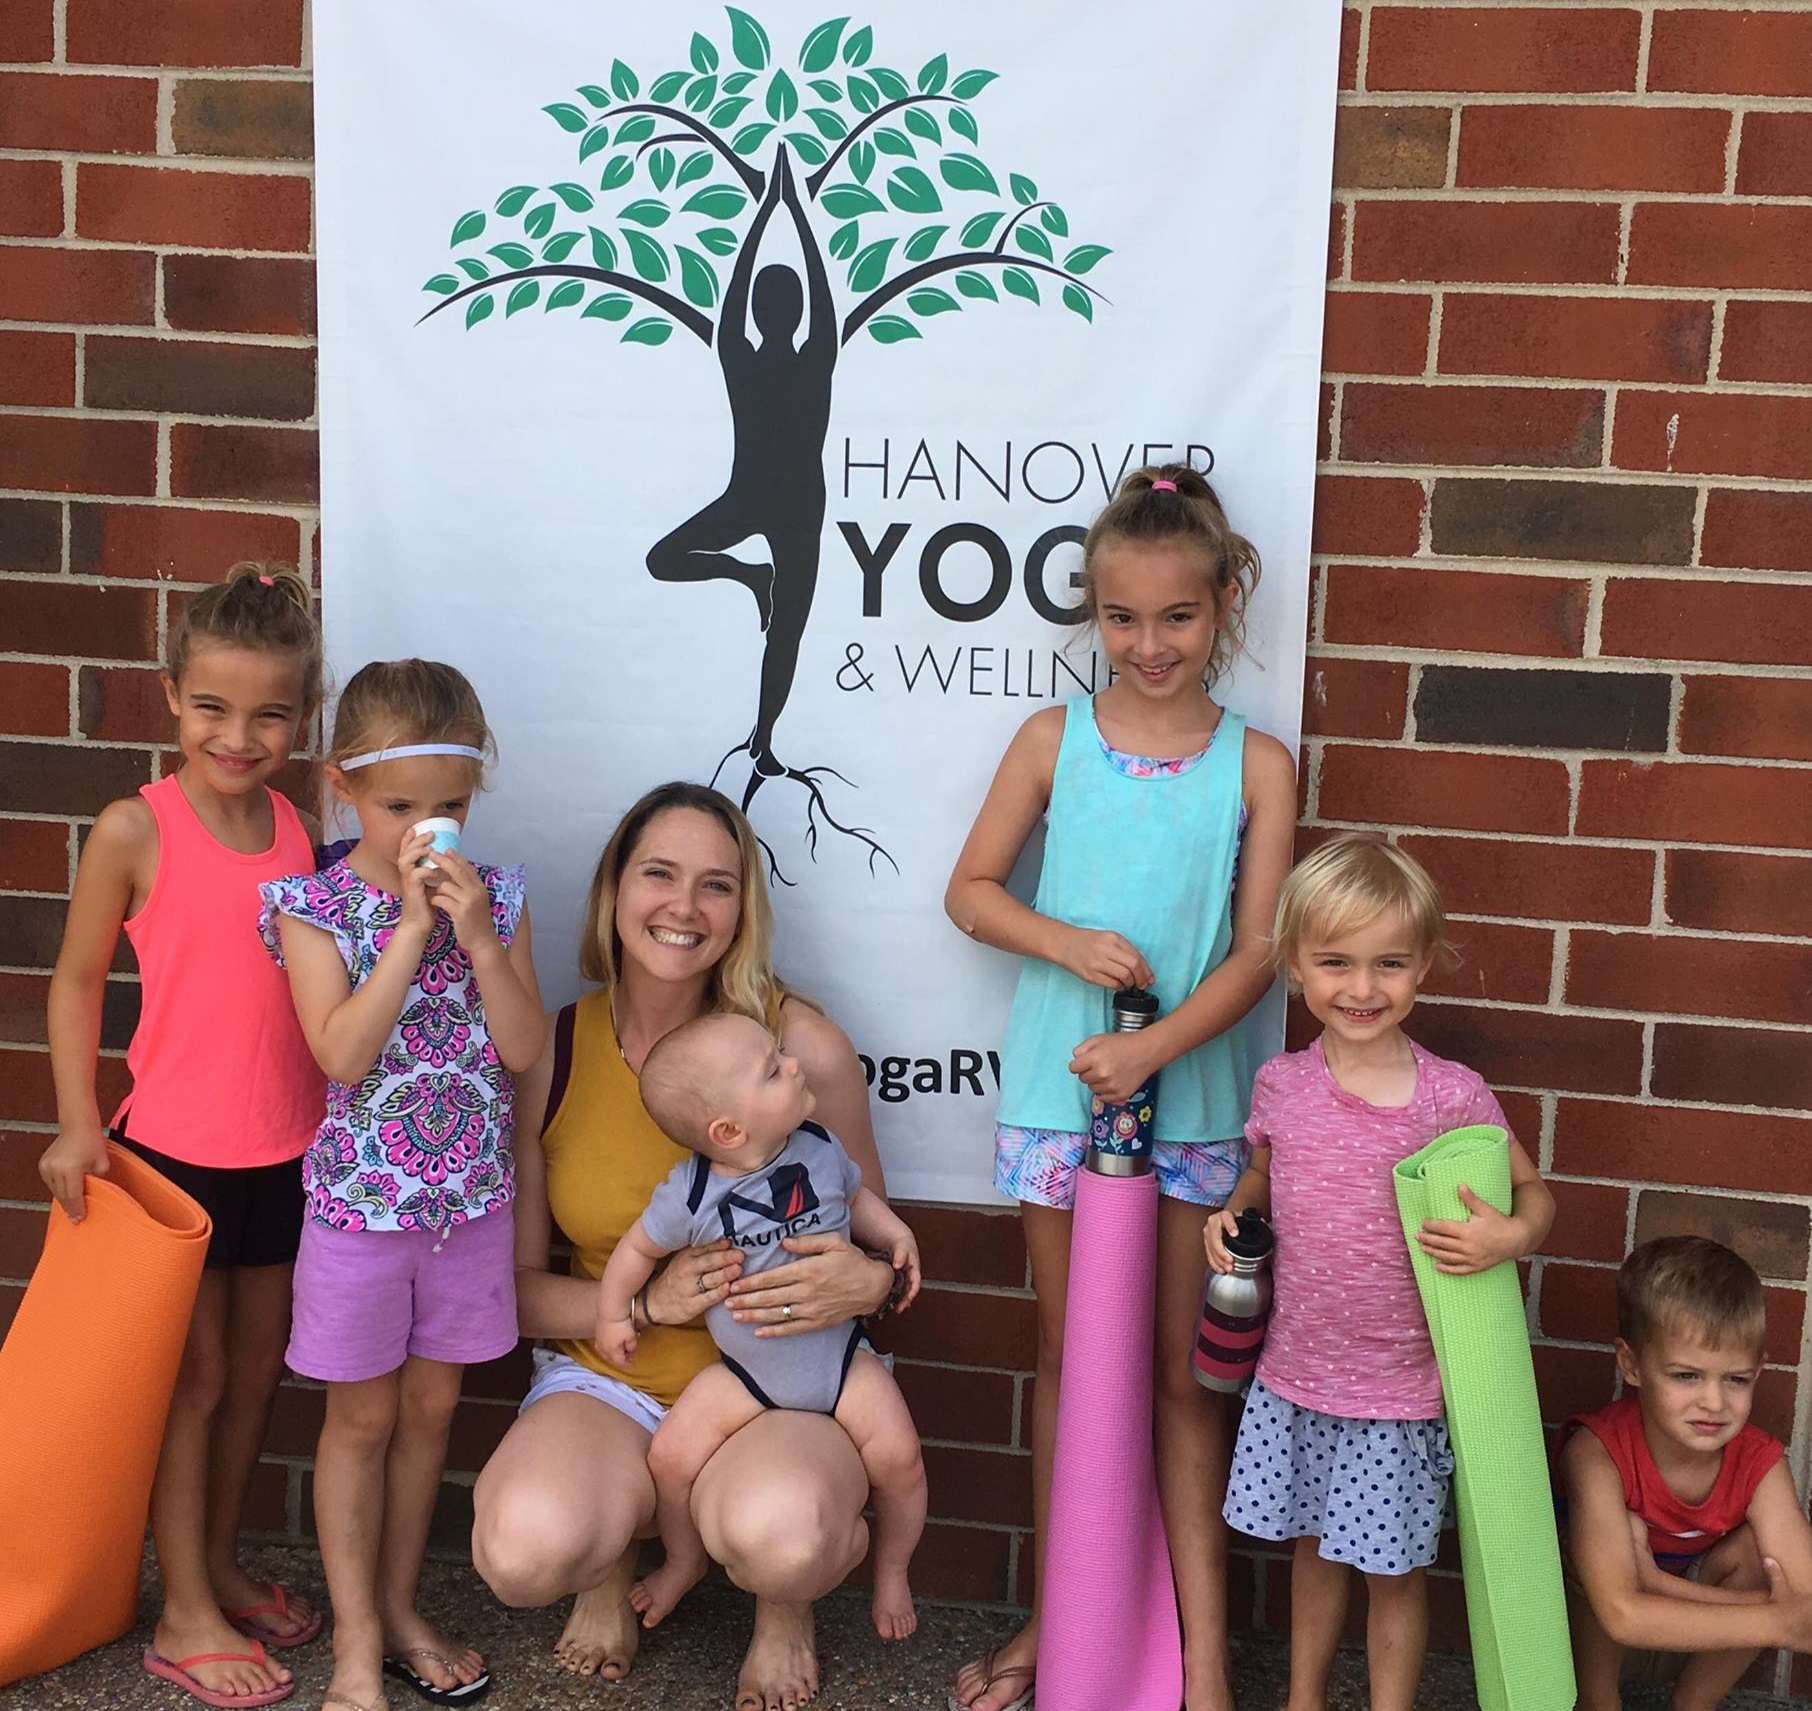 Youth Yoga - Yoga classes for Kids and Tweens at our studio and throughout the community!